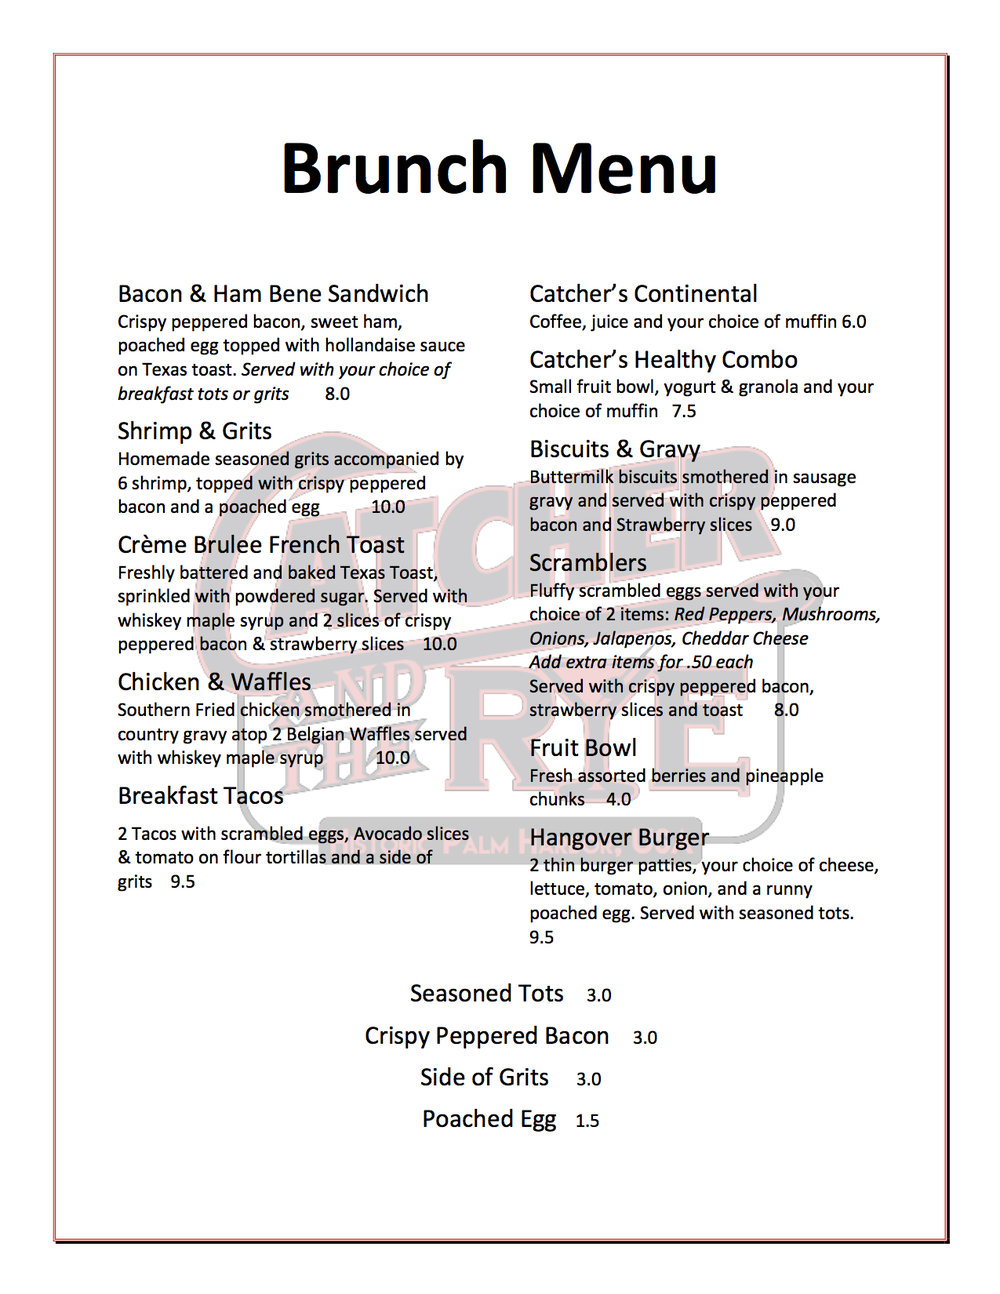 CATR BRUNCH MENU.jpg